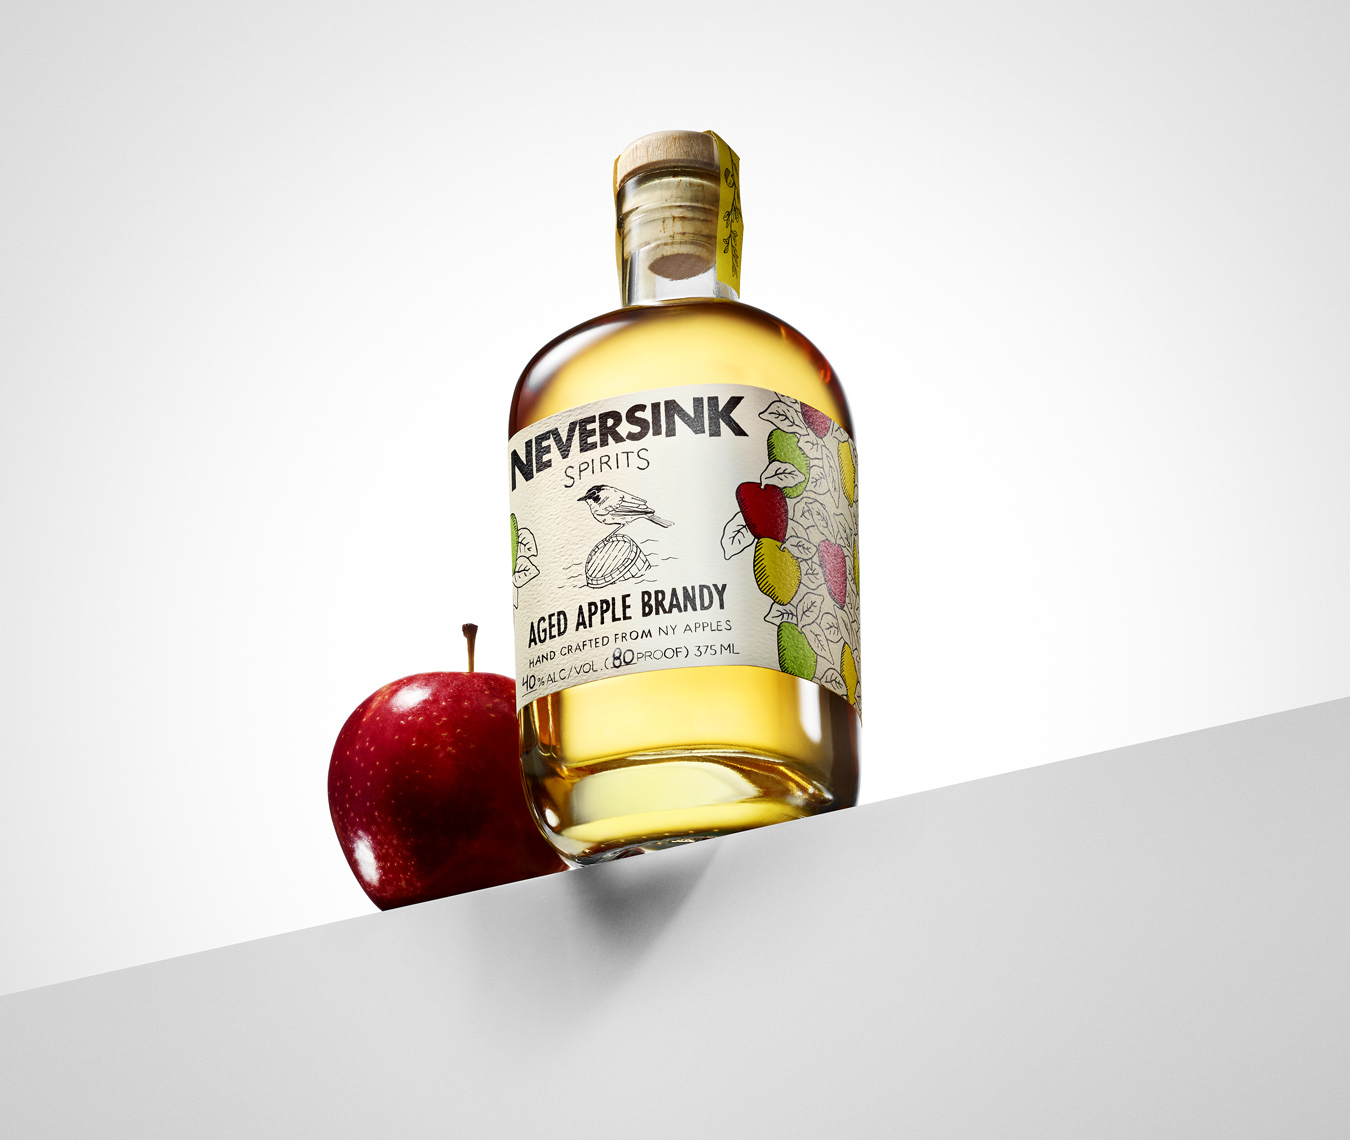 neversink_aged_apple_brandy_apple